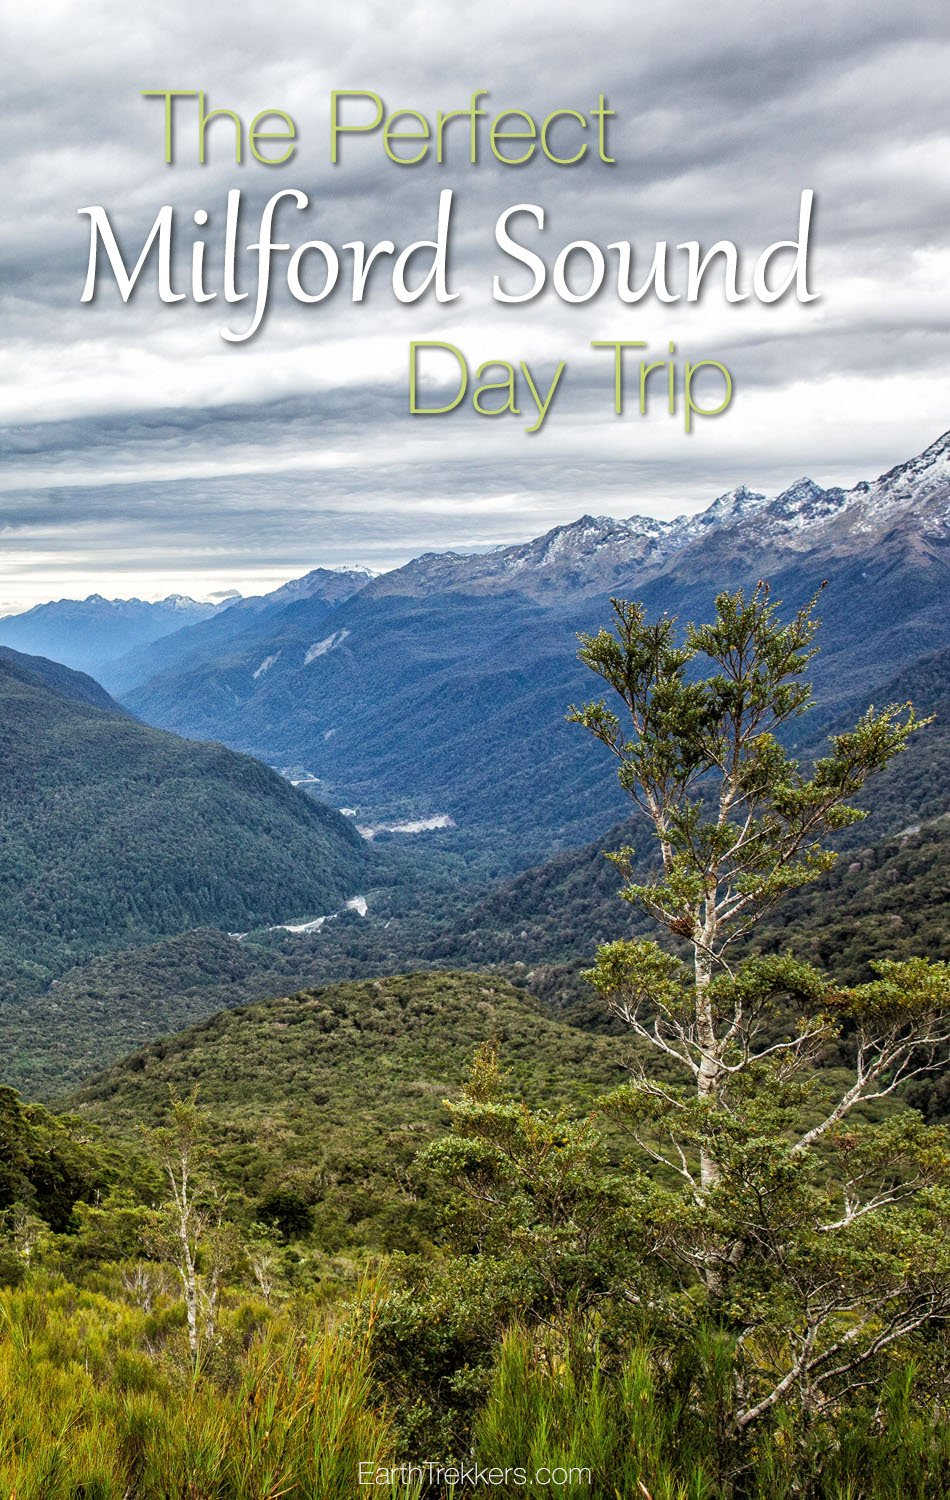 The Perfect Milford Sound Day Trip